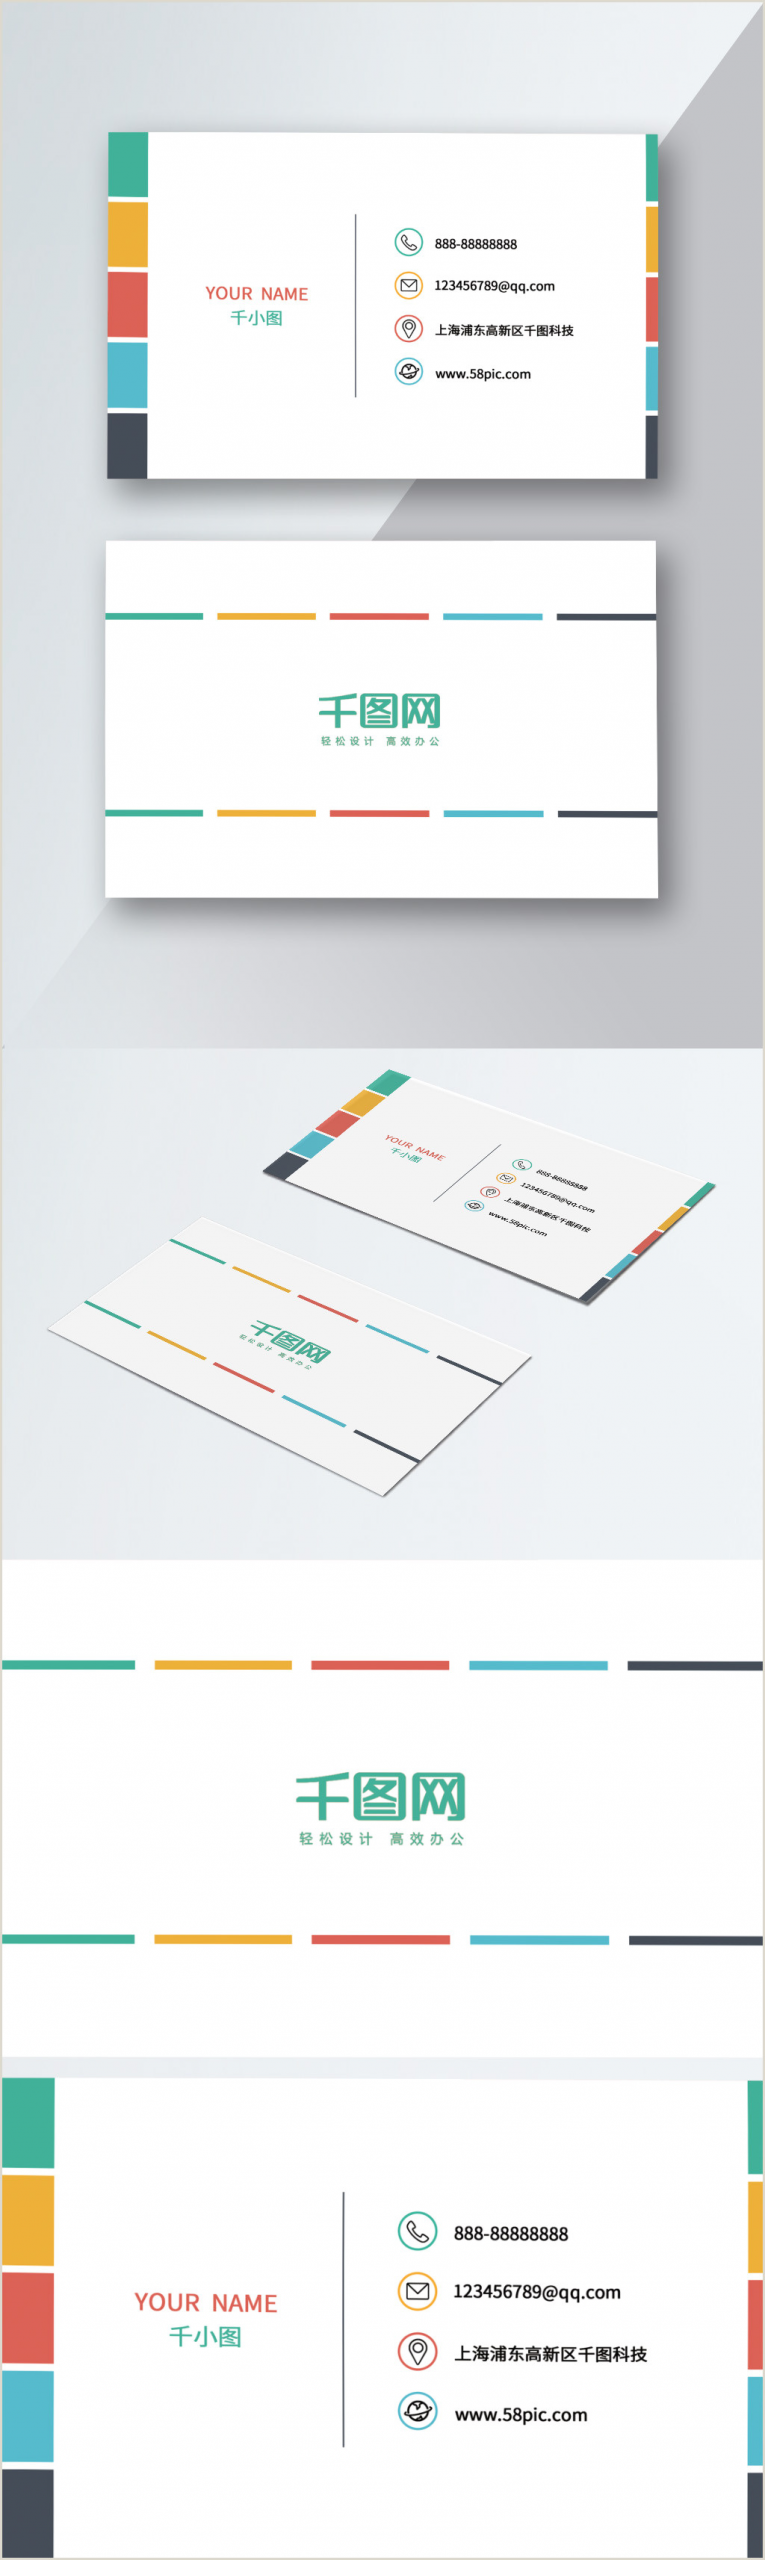 One Color Business Cards Color Business Card Template Image Picture Free